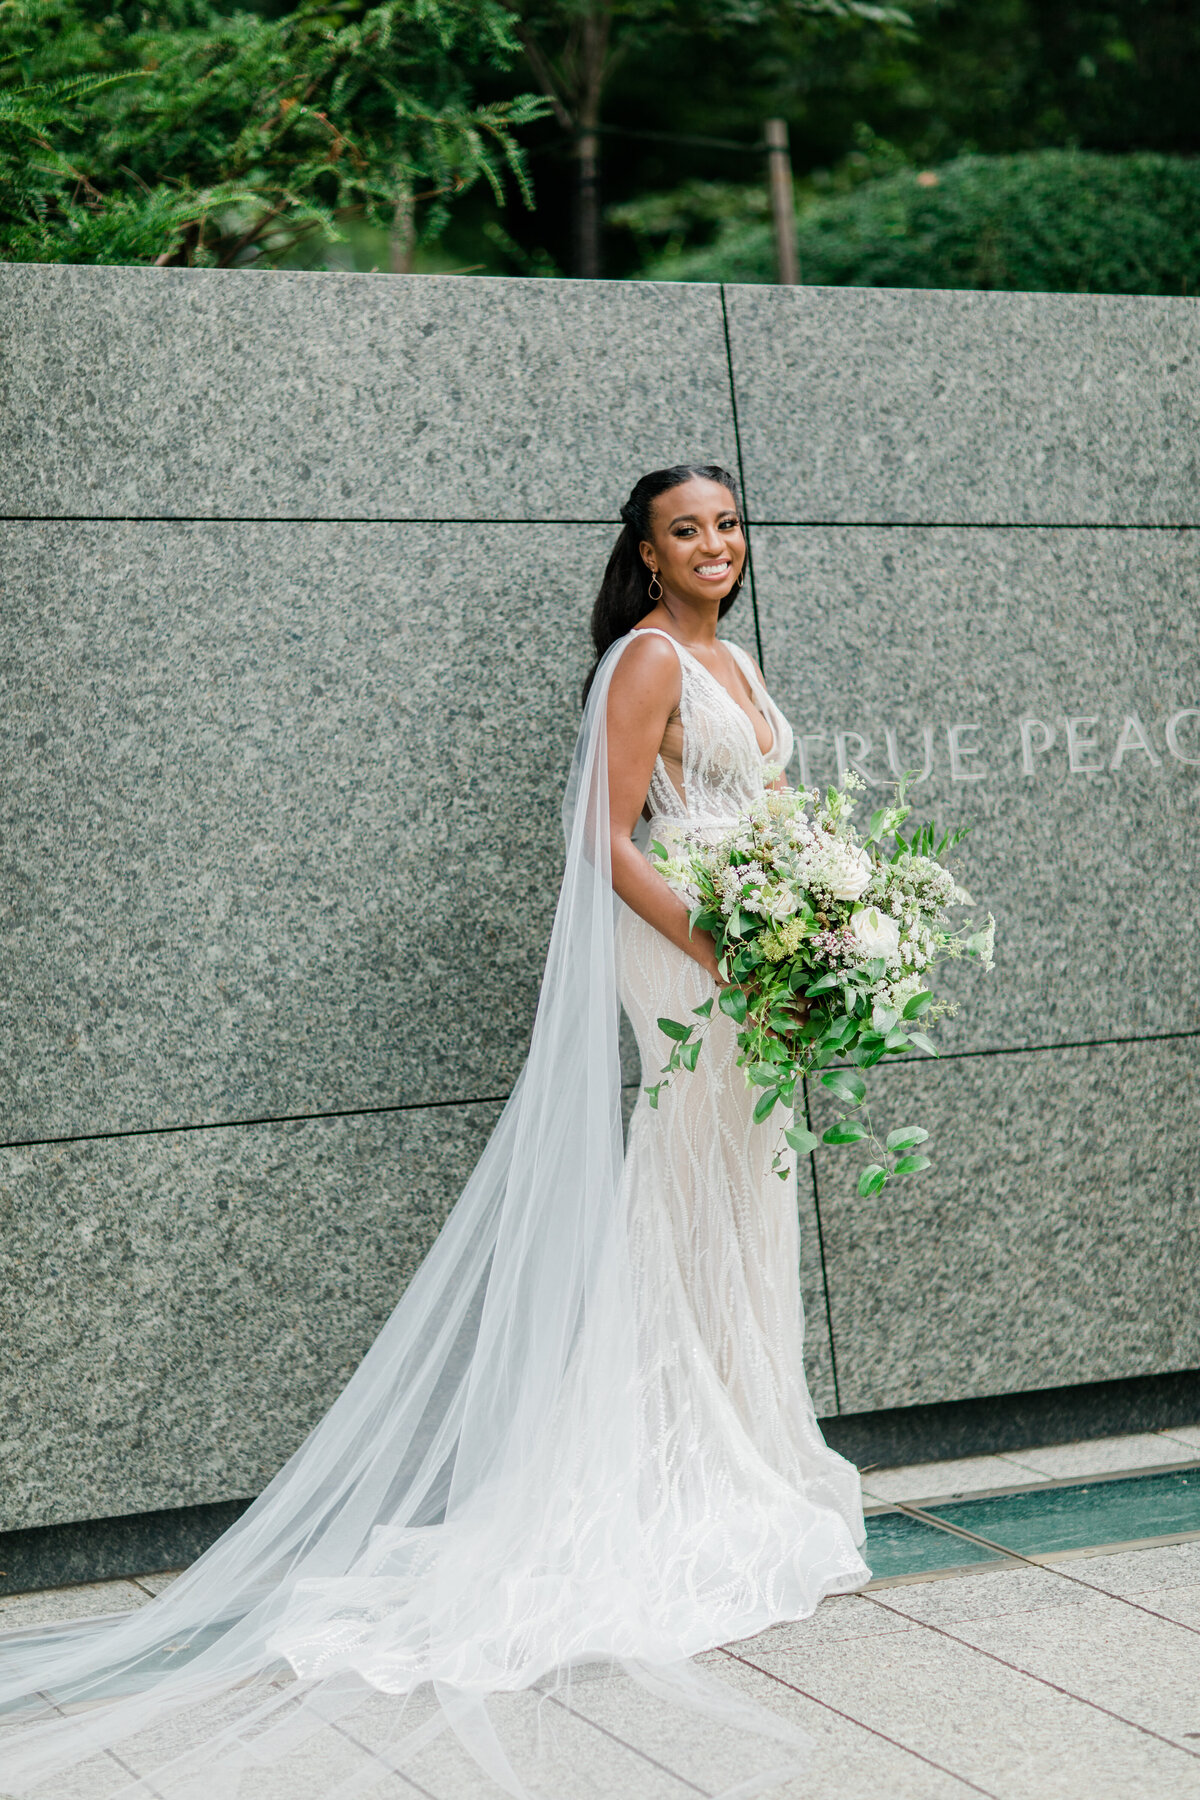 Solomon_Tkeyah_Micro_COVID_Wedding_Washington_DC_War_Memorial_MLK_Memorial_Linoln_Memorial_Angelika_Johns_Photography-3824